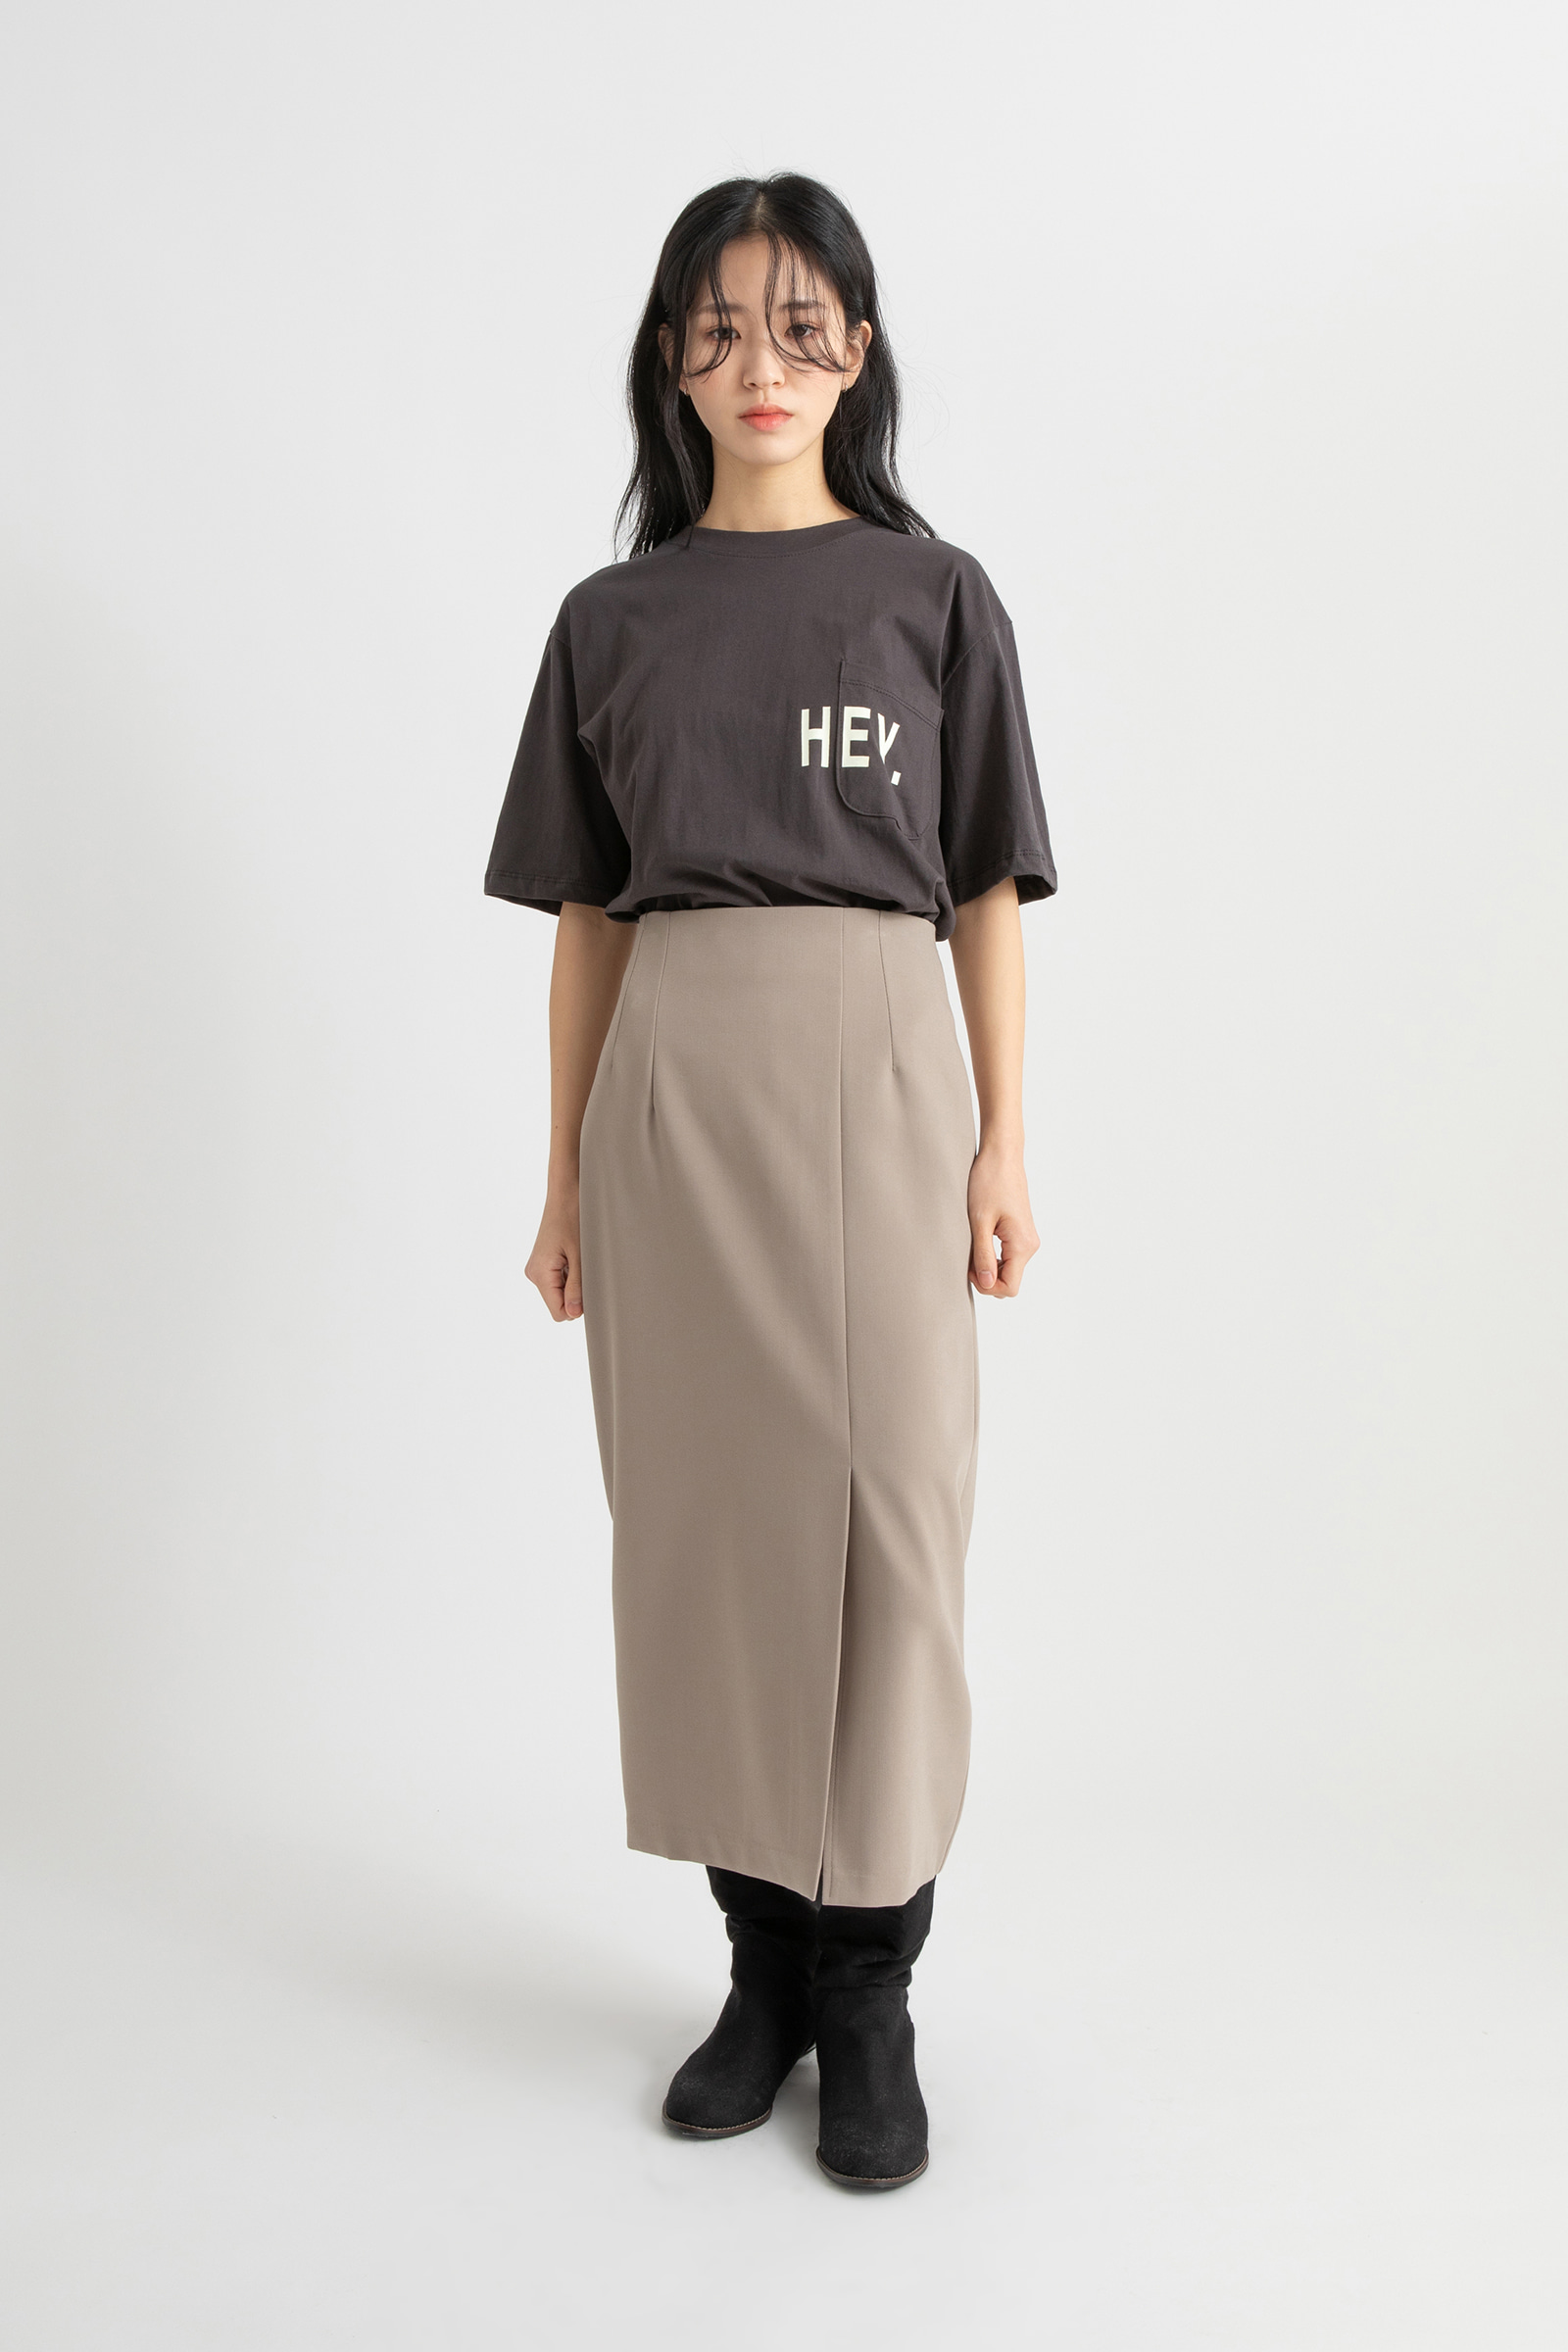 Hey lettering round neck t-shirt